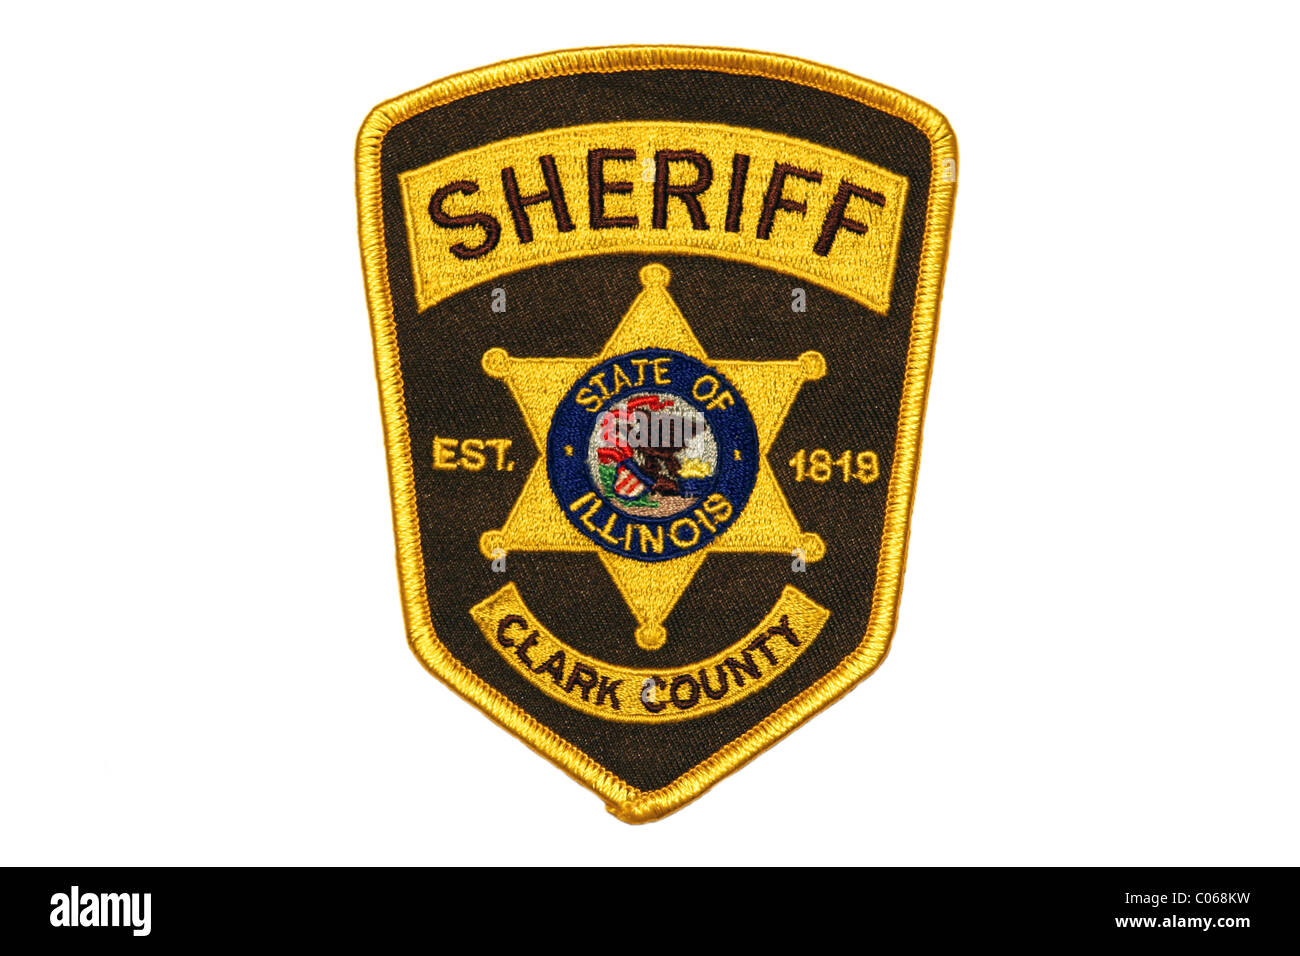 Clark County Sheriff patch - Stock Image